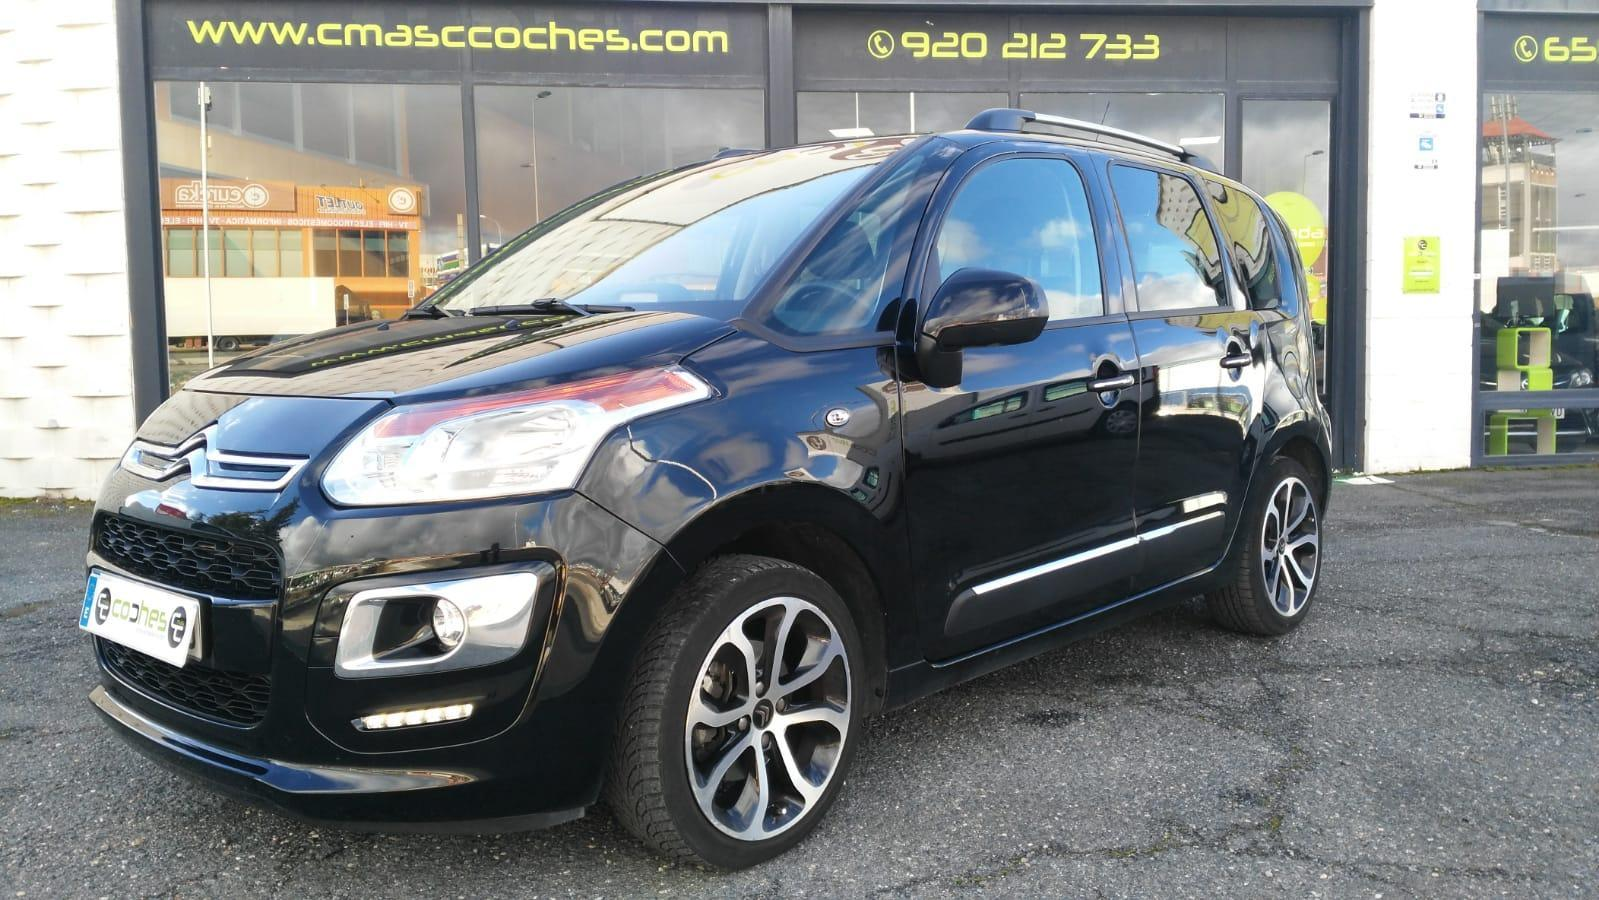 CITROEN C3 PISASSO 1.2 110 CV